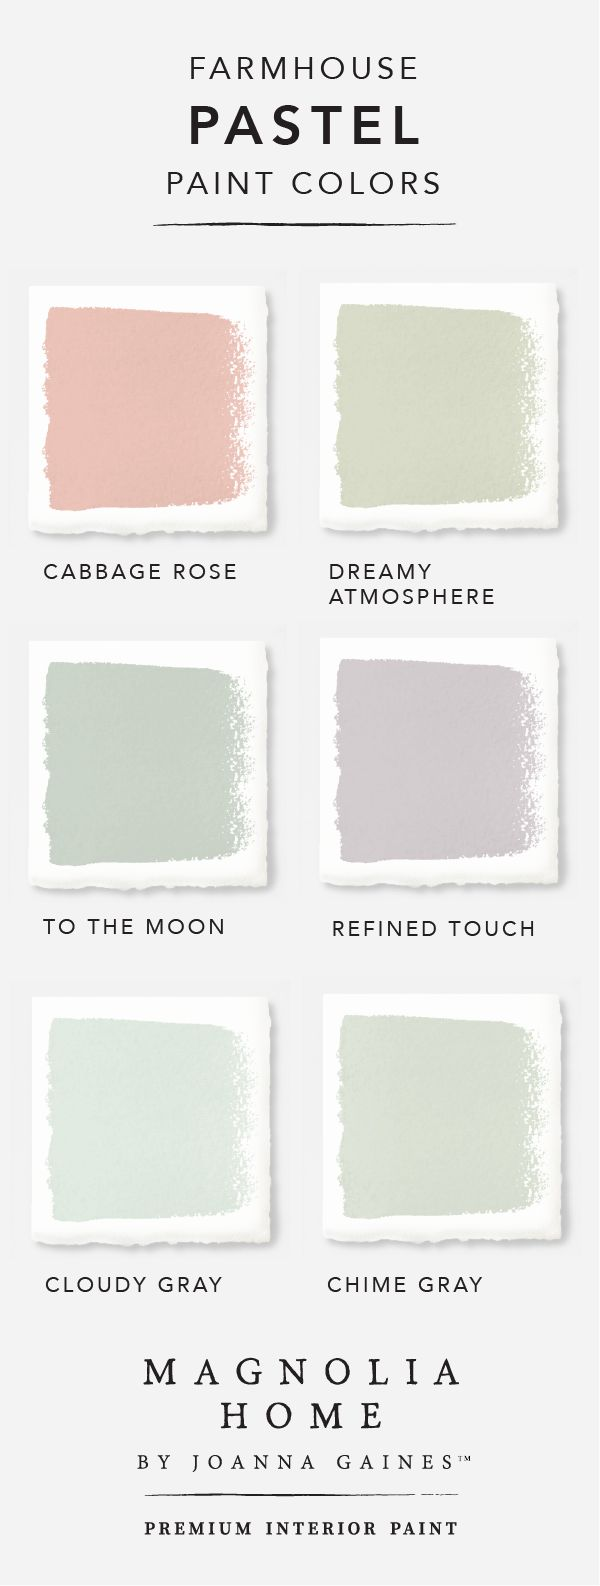 3529 best images about color and paint ideas on pinterest for Magnolia home paint colors